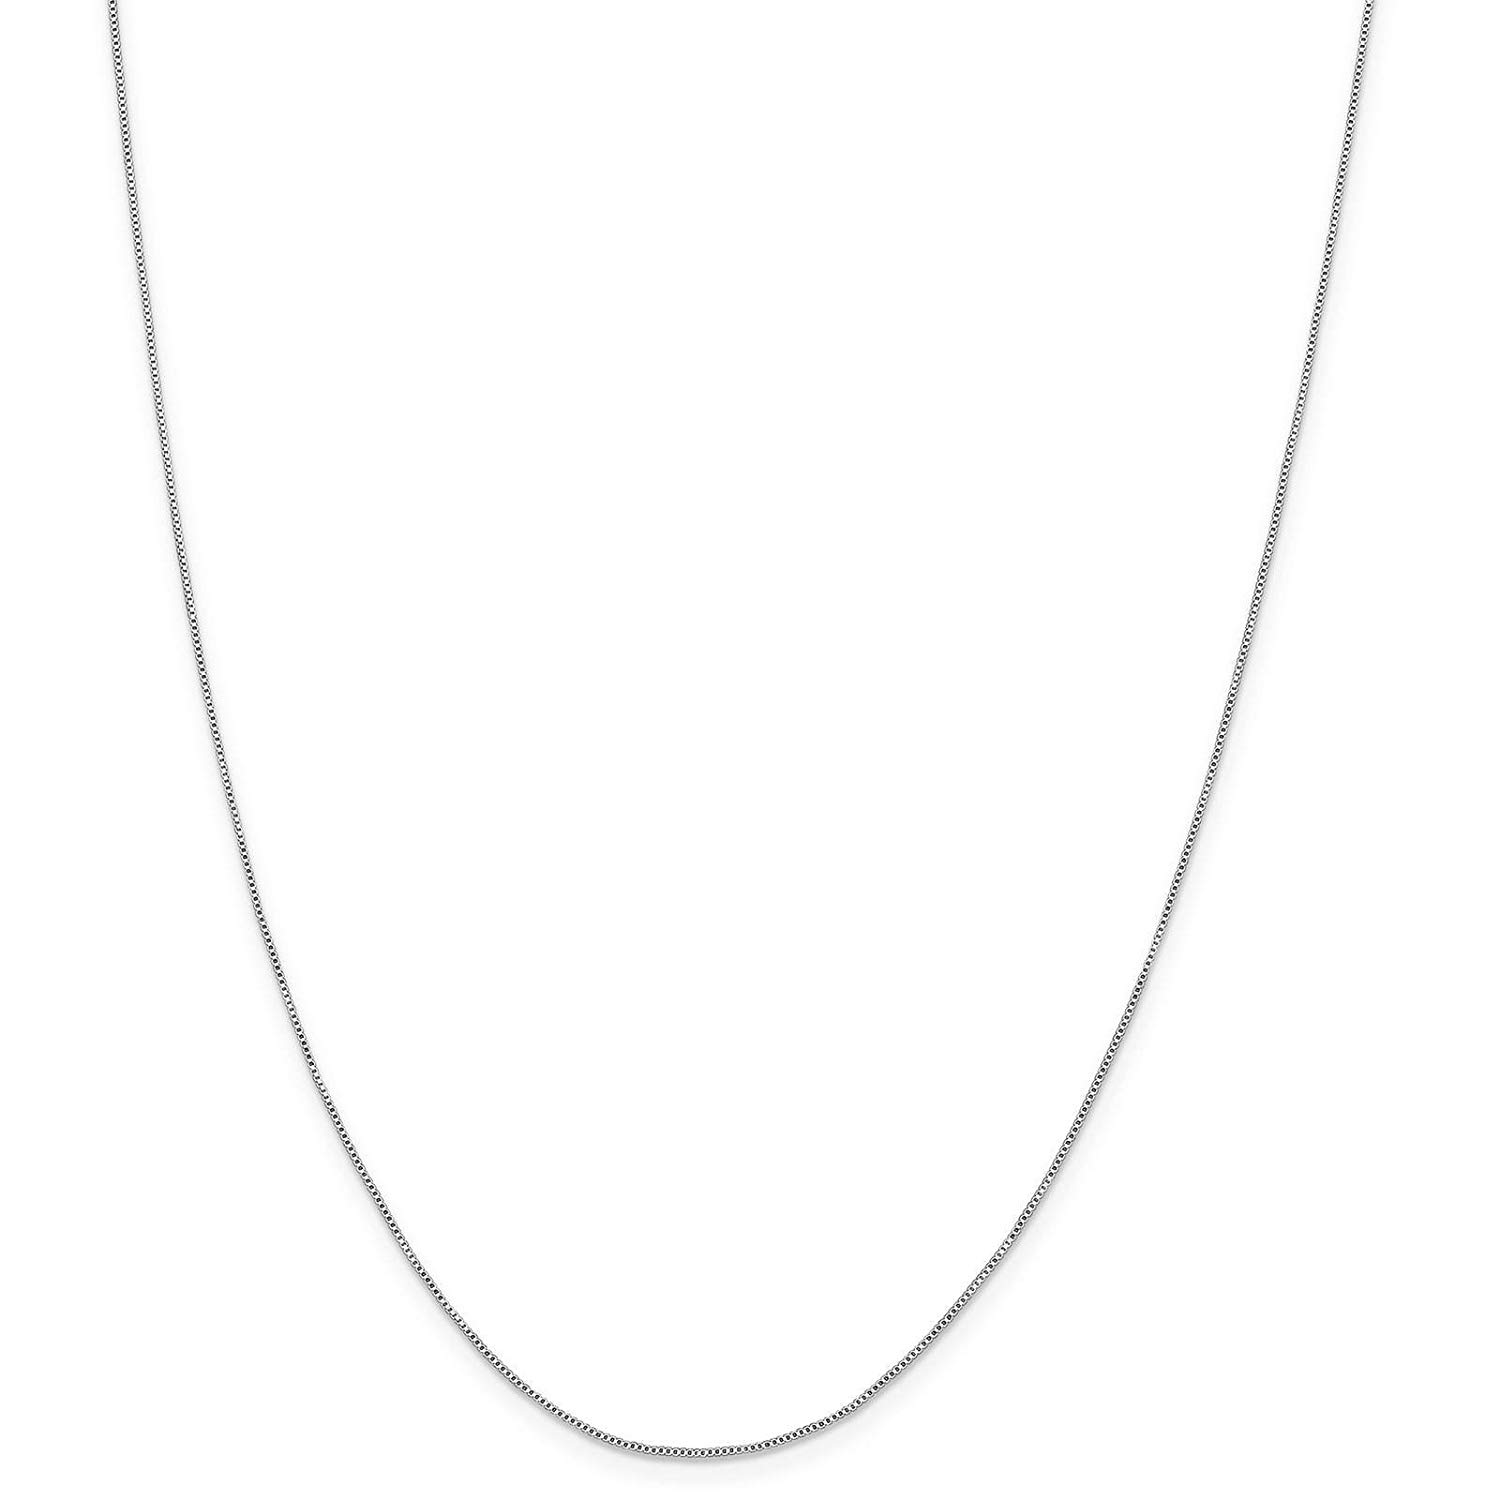 "925 Sterling Silver Solid 0.6mm Polished Box Chain Necklace 9"" - 24"""